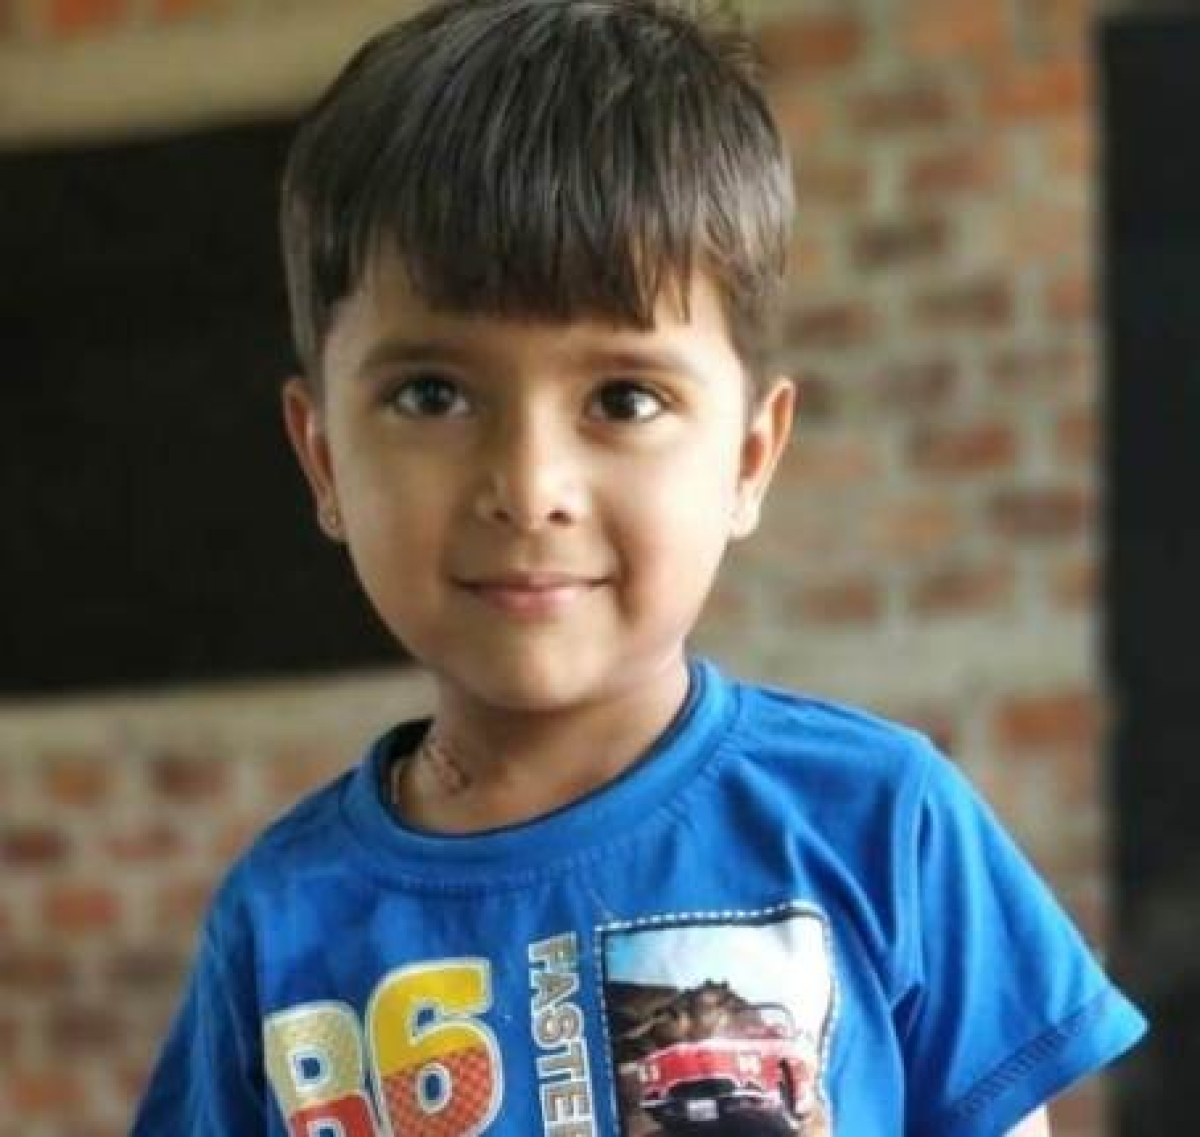 Five-year-old Awadhesh Chouhan, resident of Sagdi village in Dhar district, recovered from corona as his sample report came negative on Tuesday